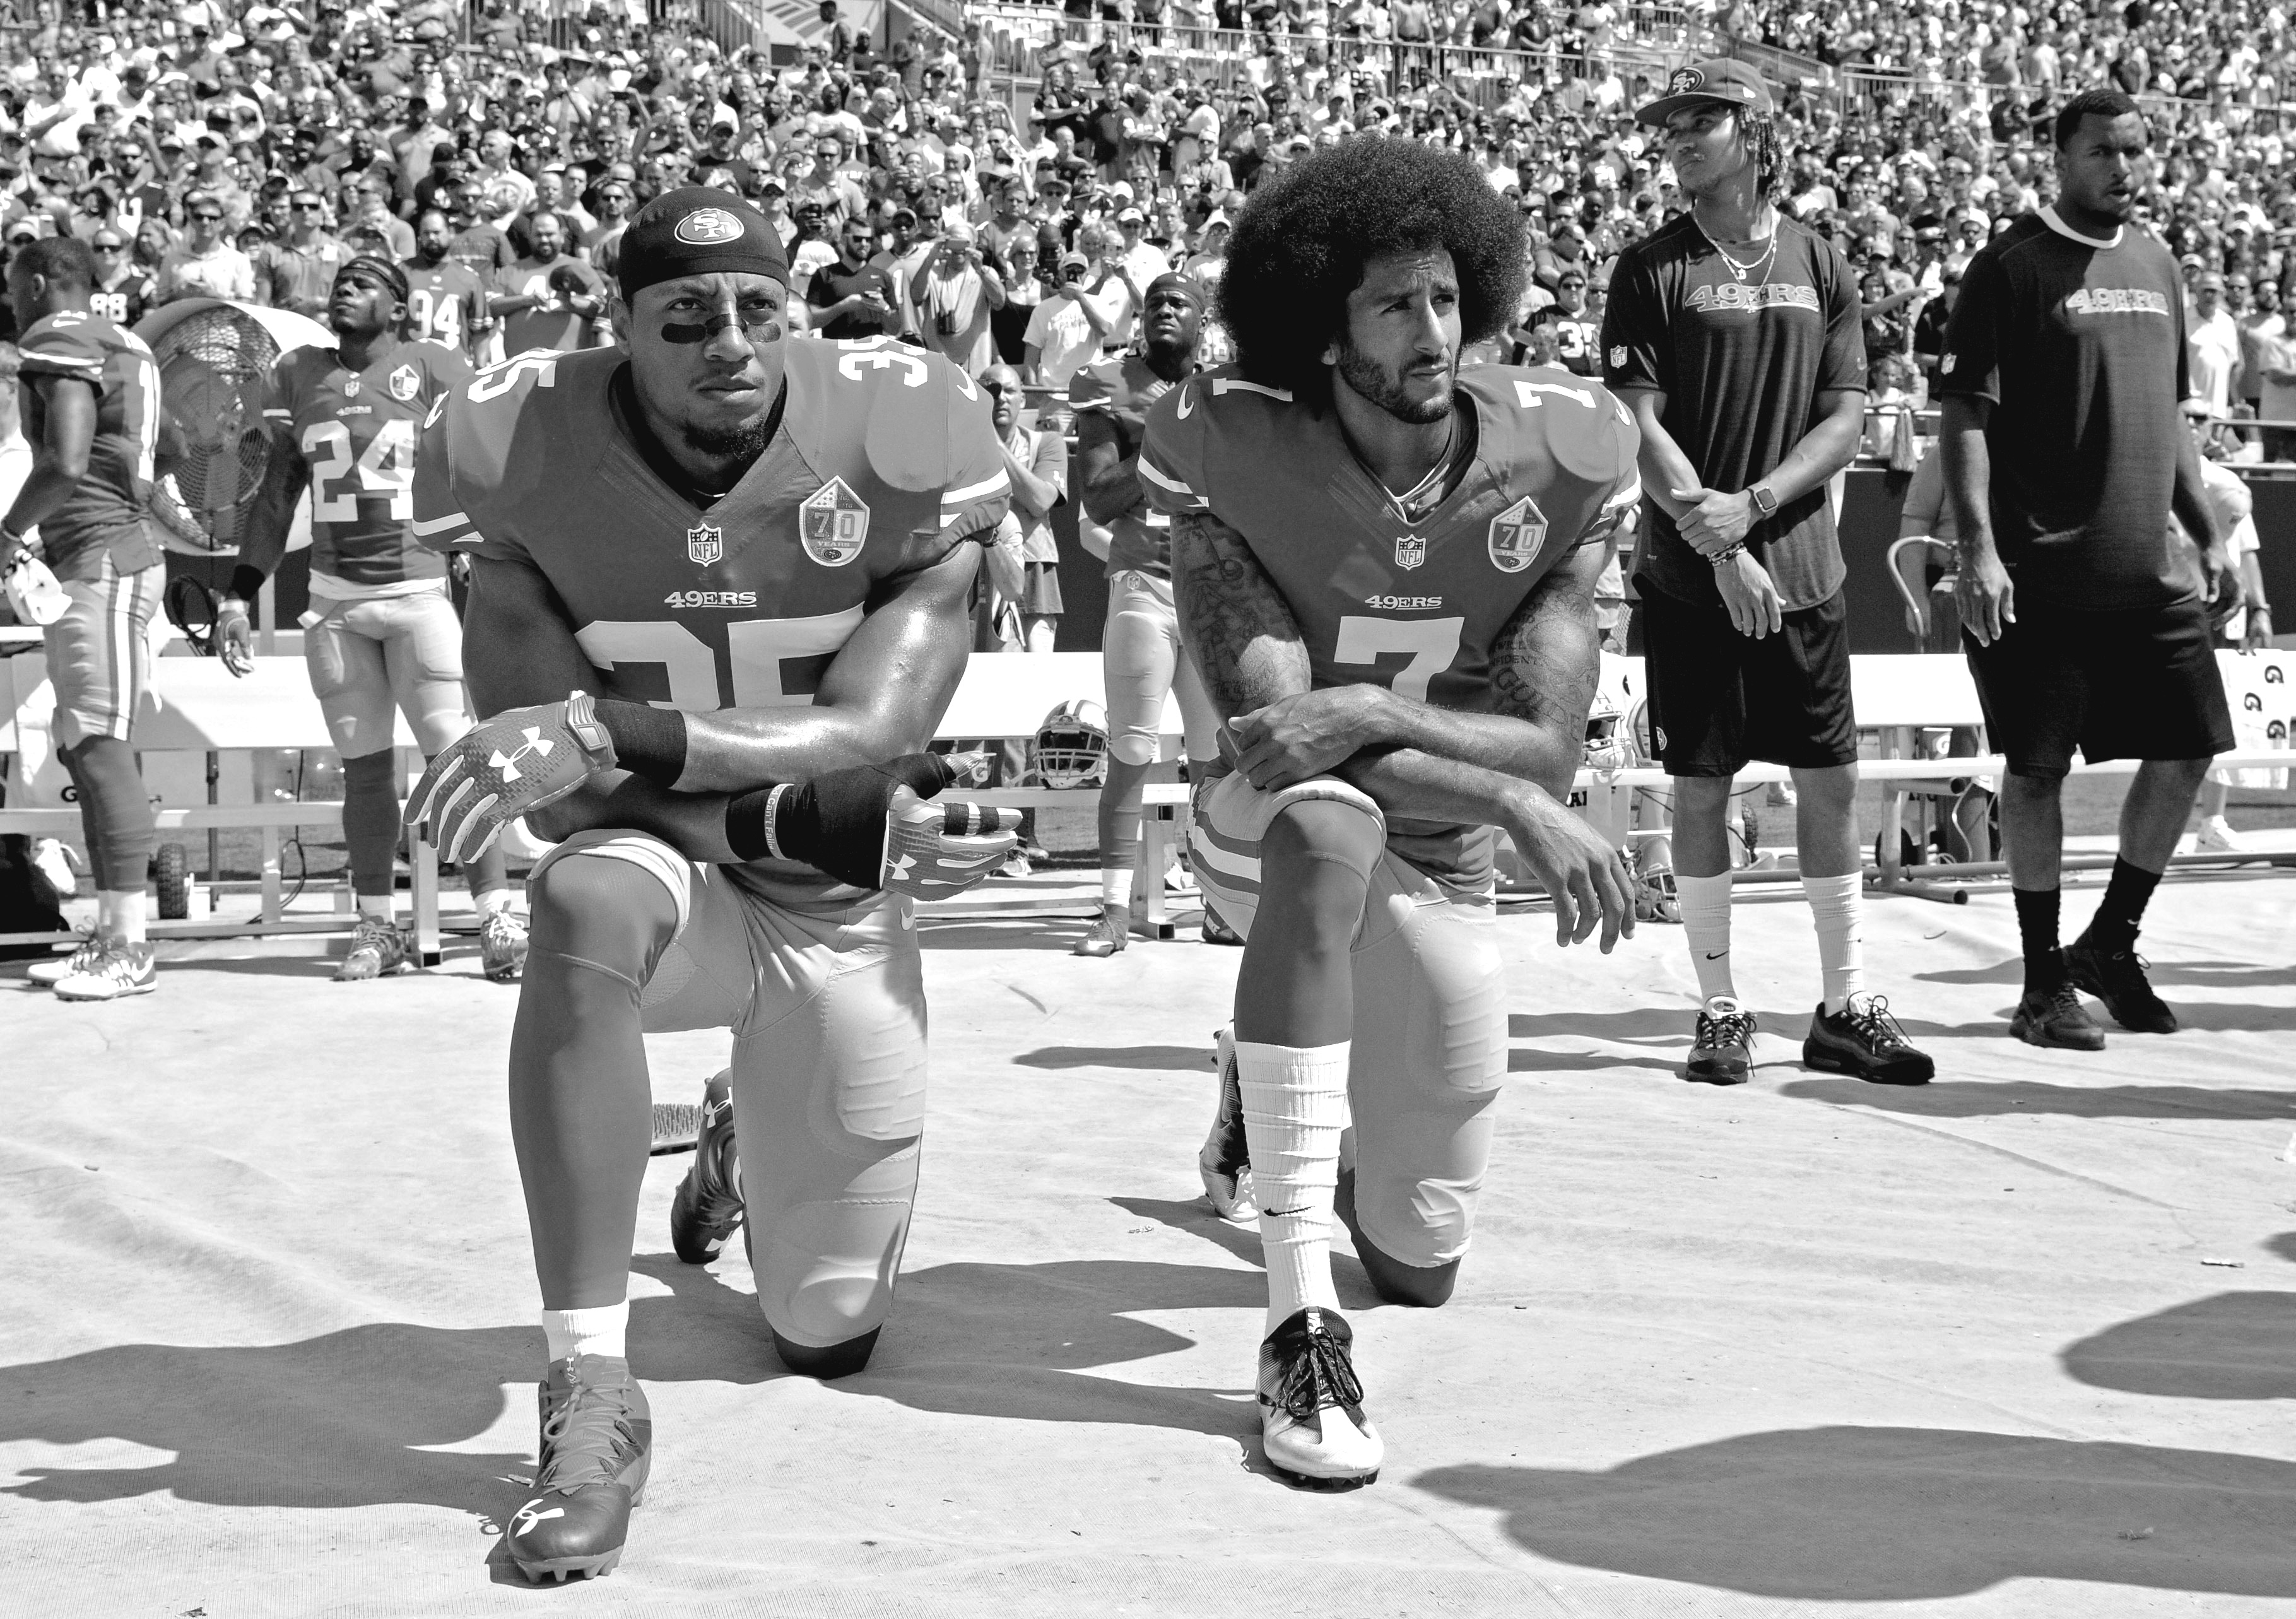 San Francisco 49ers' Colin Kaepernick (7) and Eric Reid (35) kneel during the national anthem before an NFL football game against the Carolina Panthers in Charlotte, on Sunday, Sept. 18.(AP Photo/Mike McCarn)